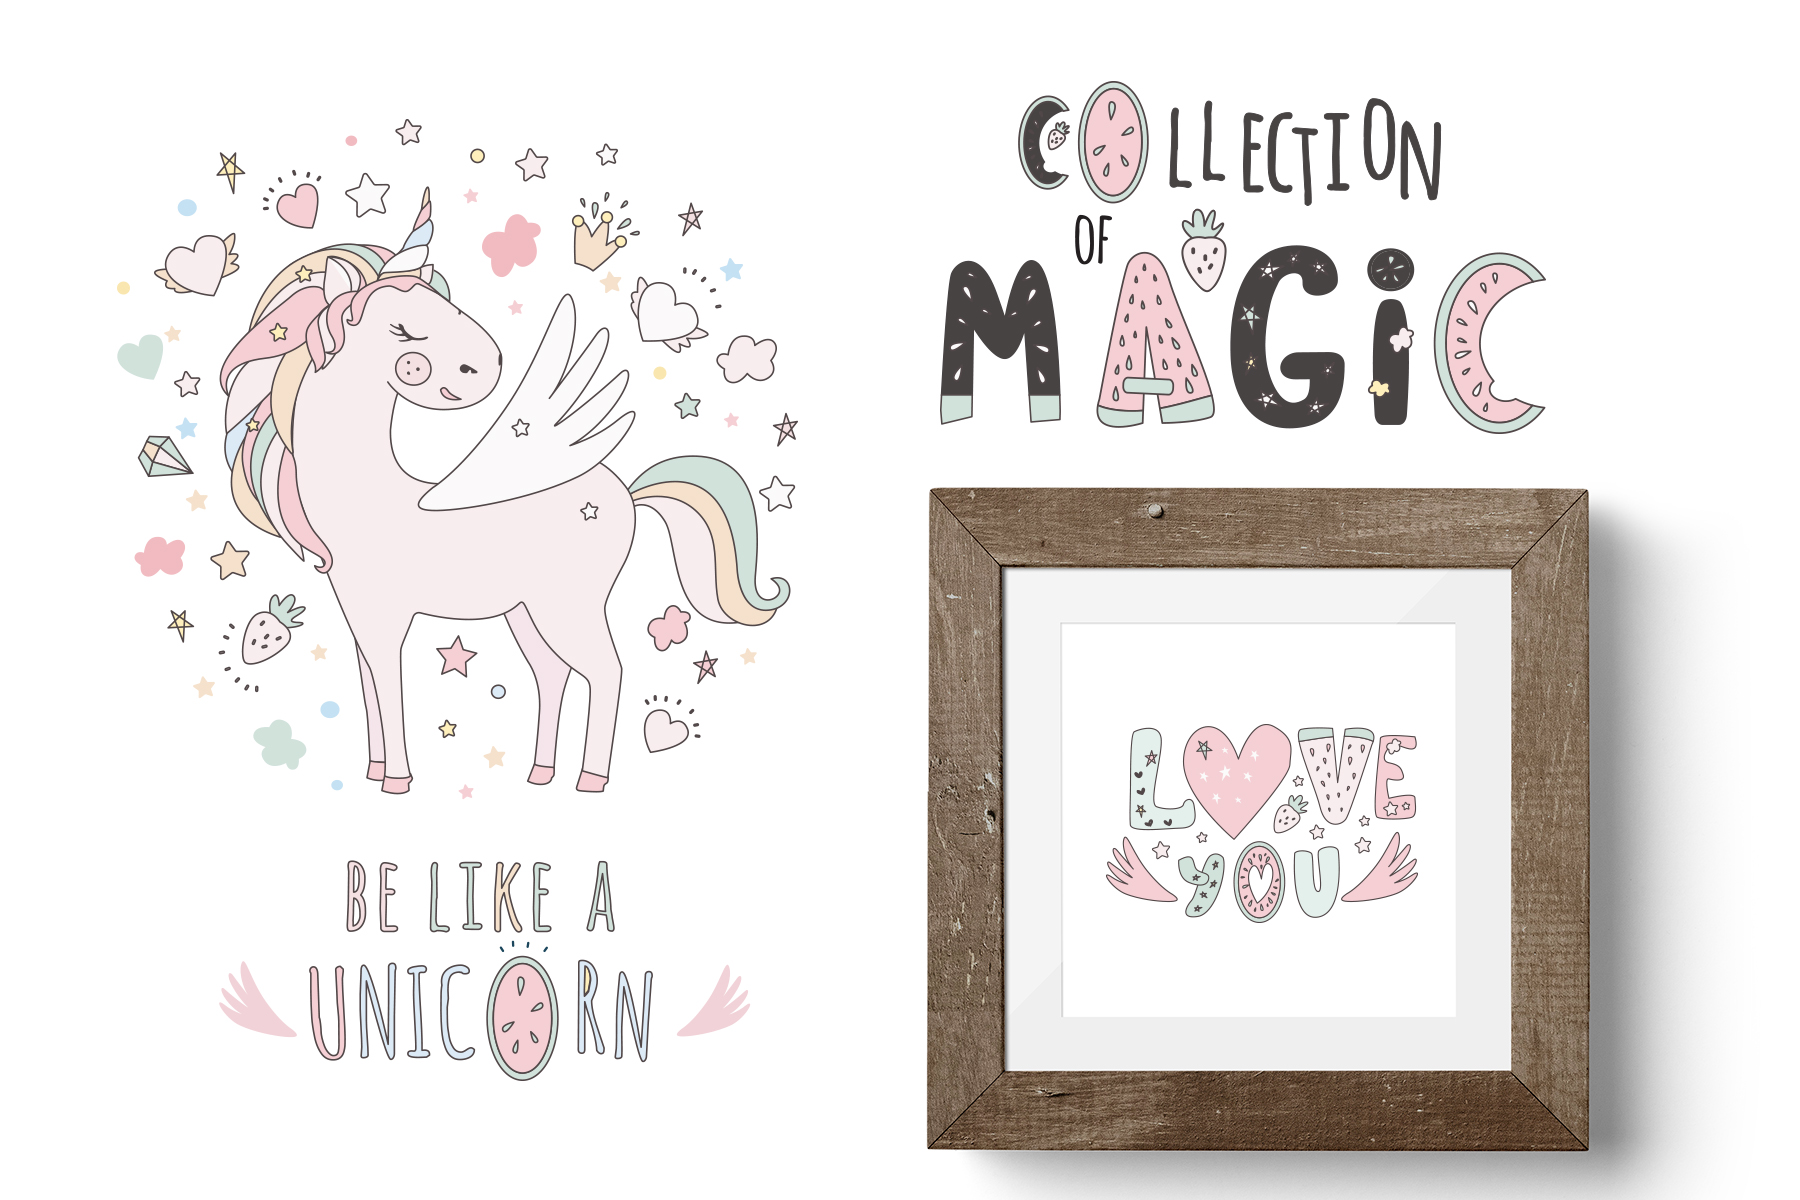 Magical collection of unicorns example image 2